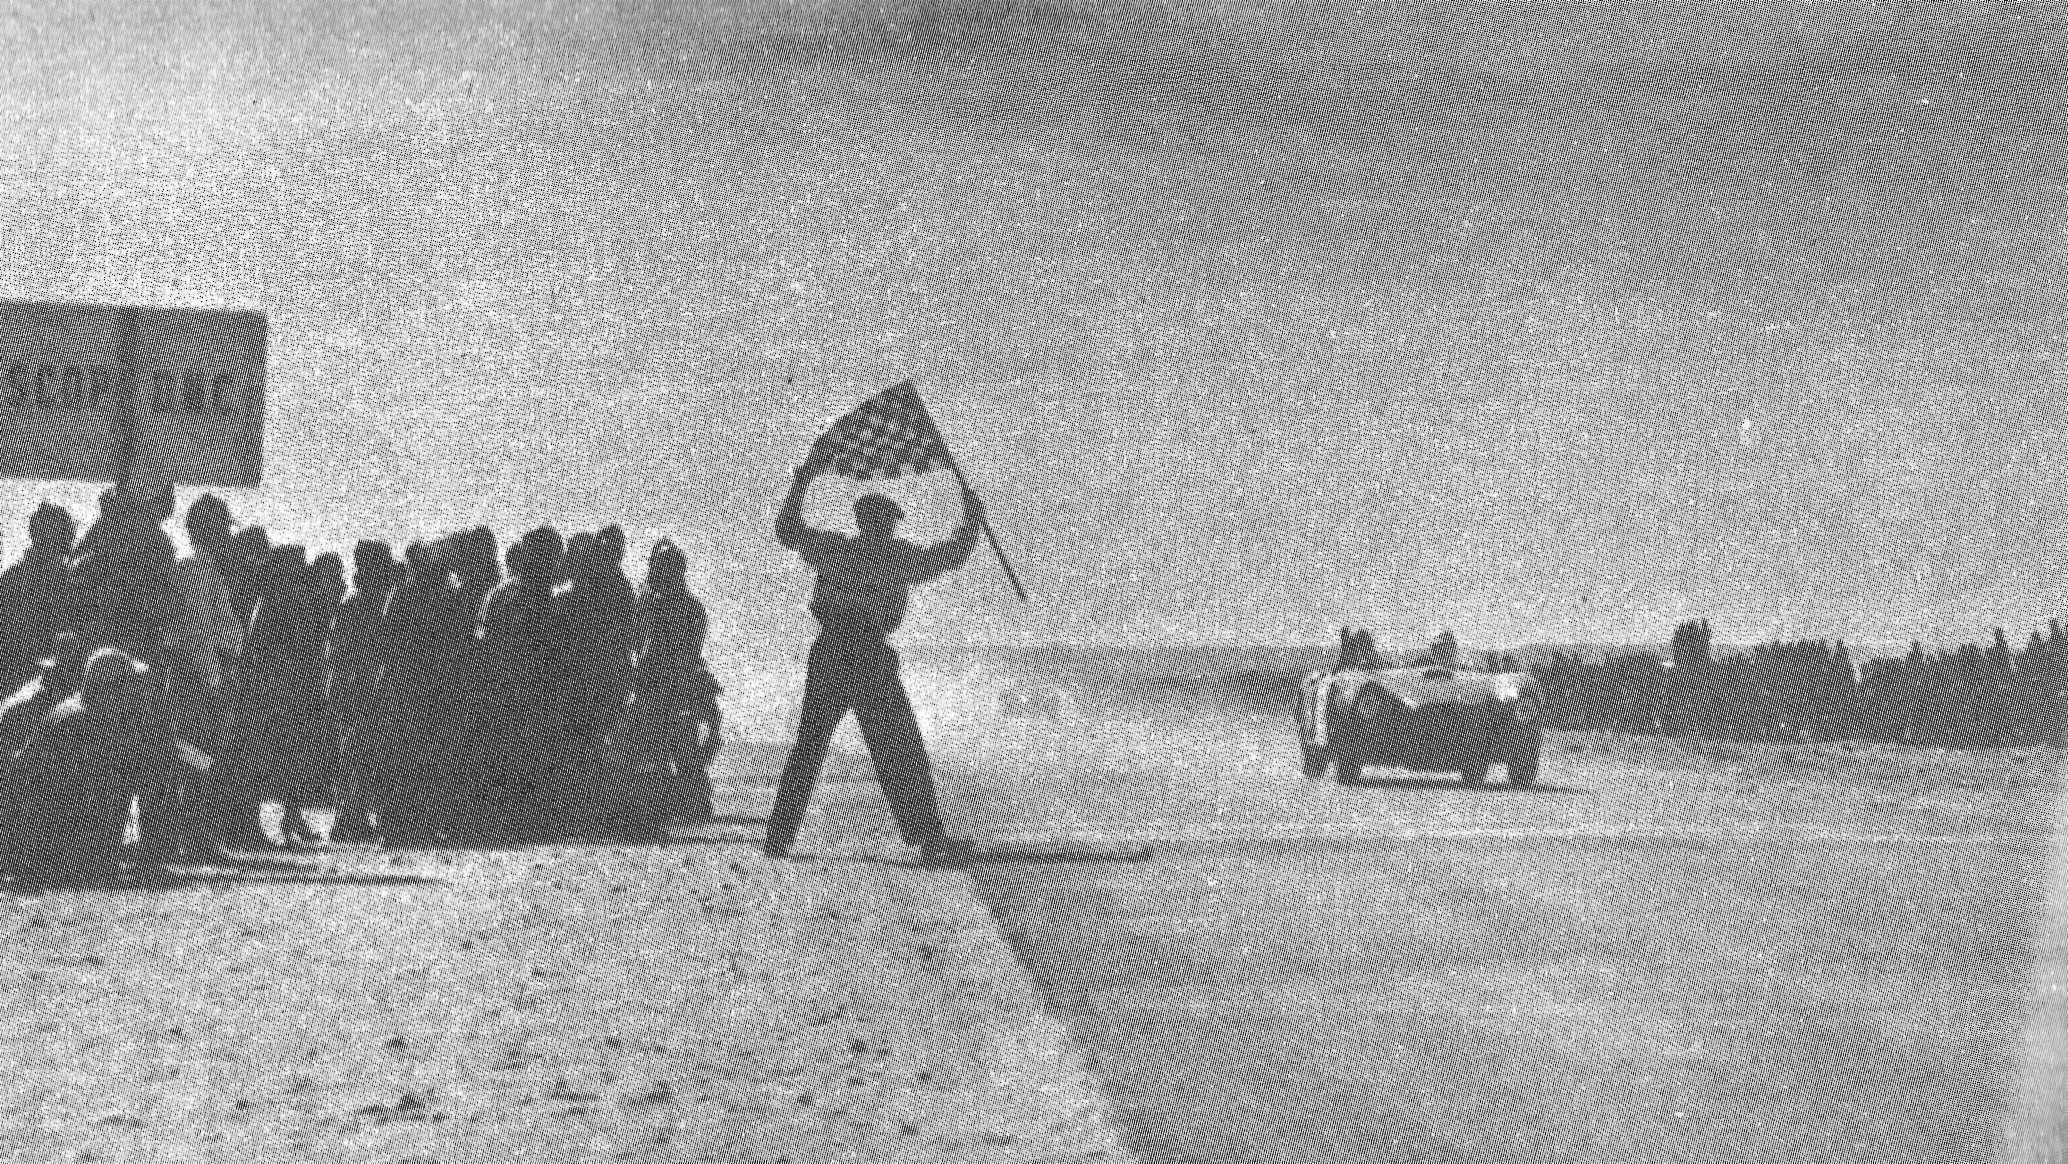 Fangio Takes the Checkered Flag at the 1953 La Carrera Panamericana